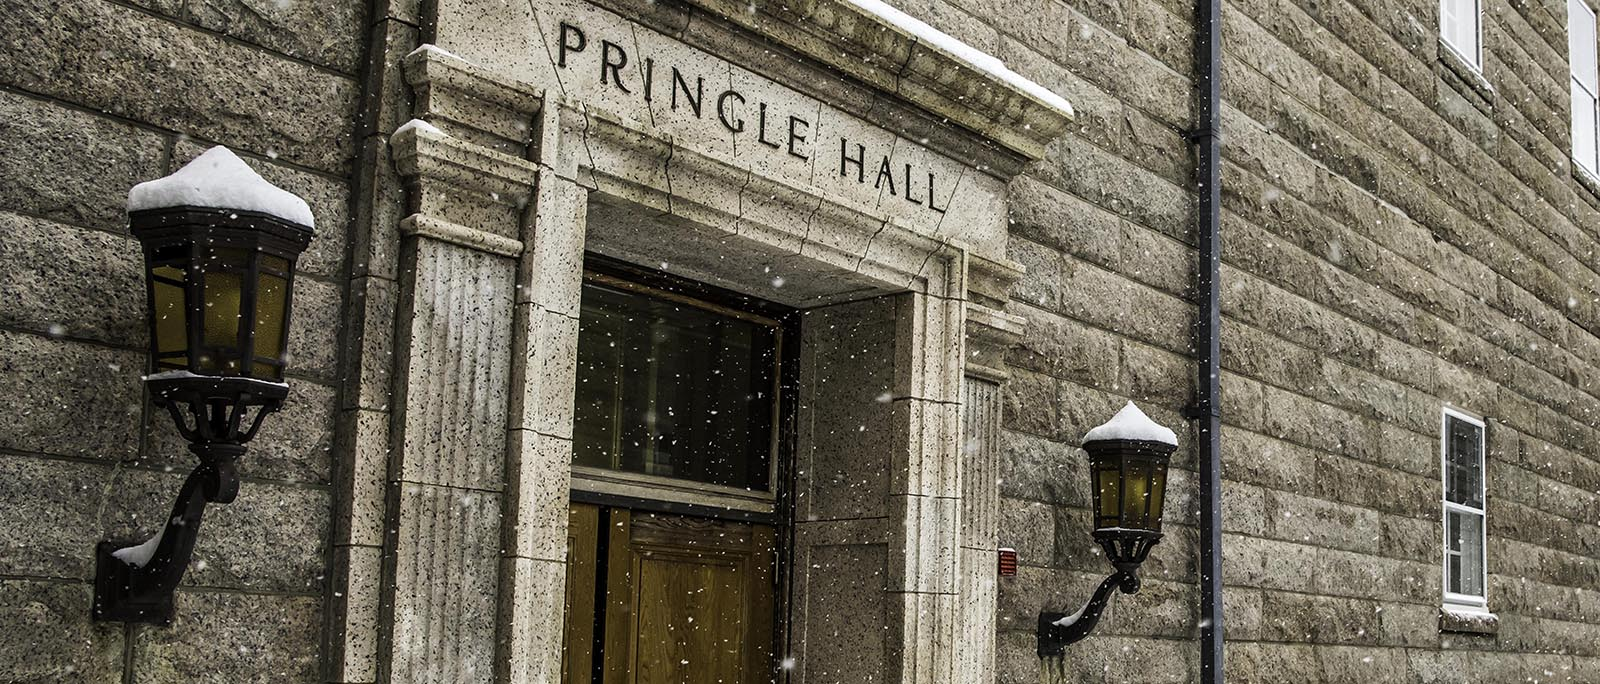 Pringle Hall side view with snow falling at U.S. Naval War College